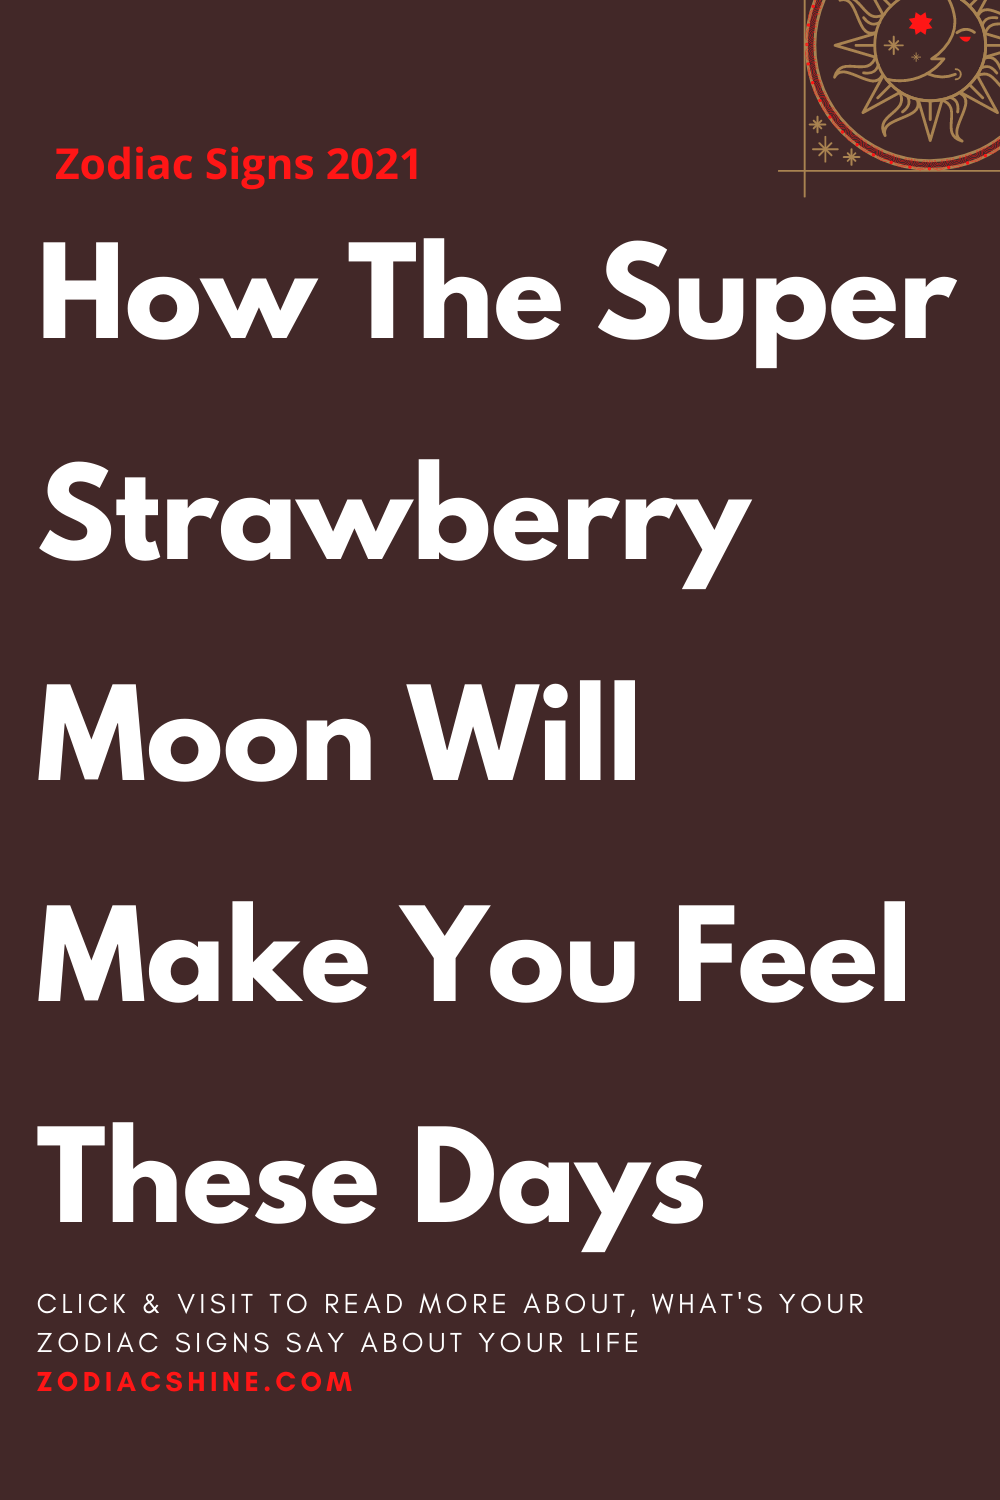 How The Super Strawberry Moon Will Make You Feel These Days